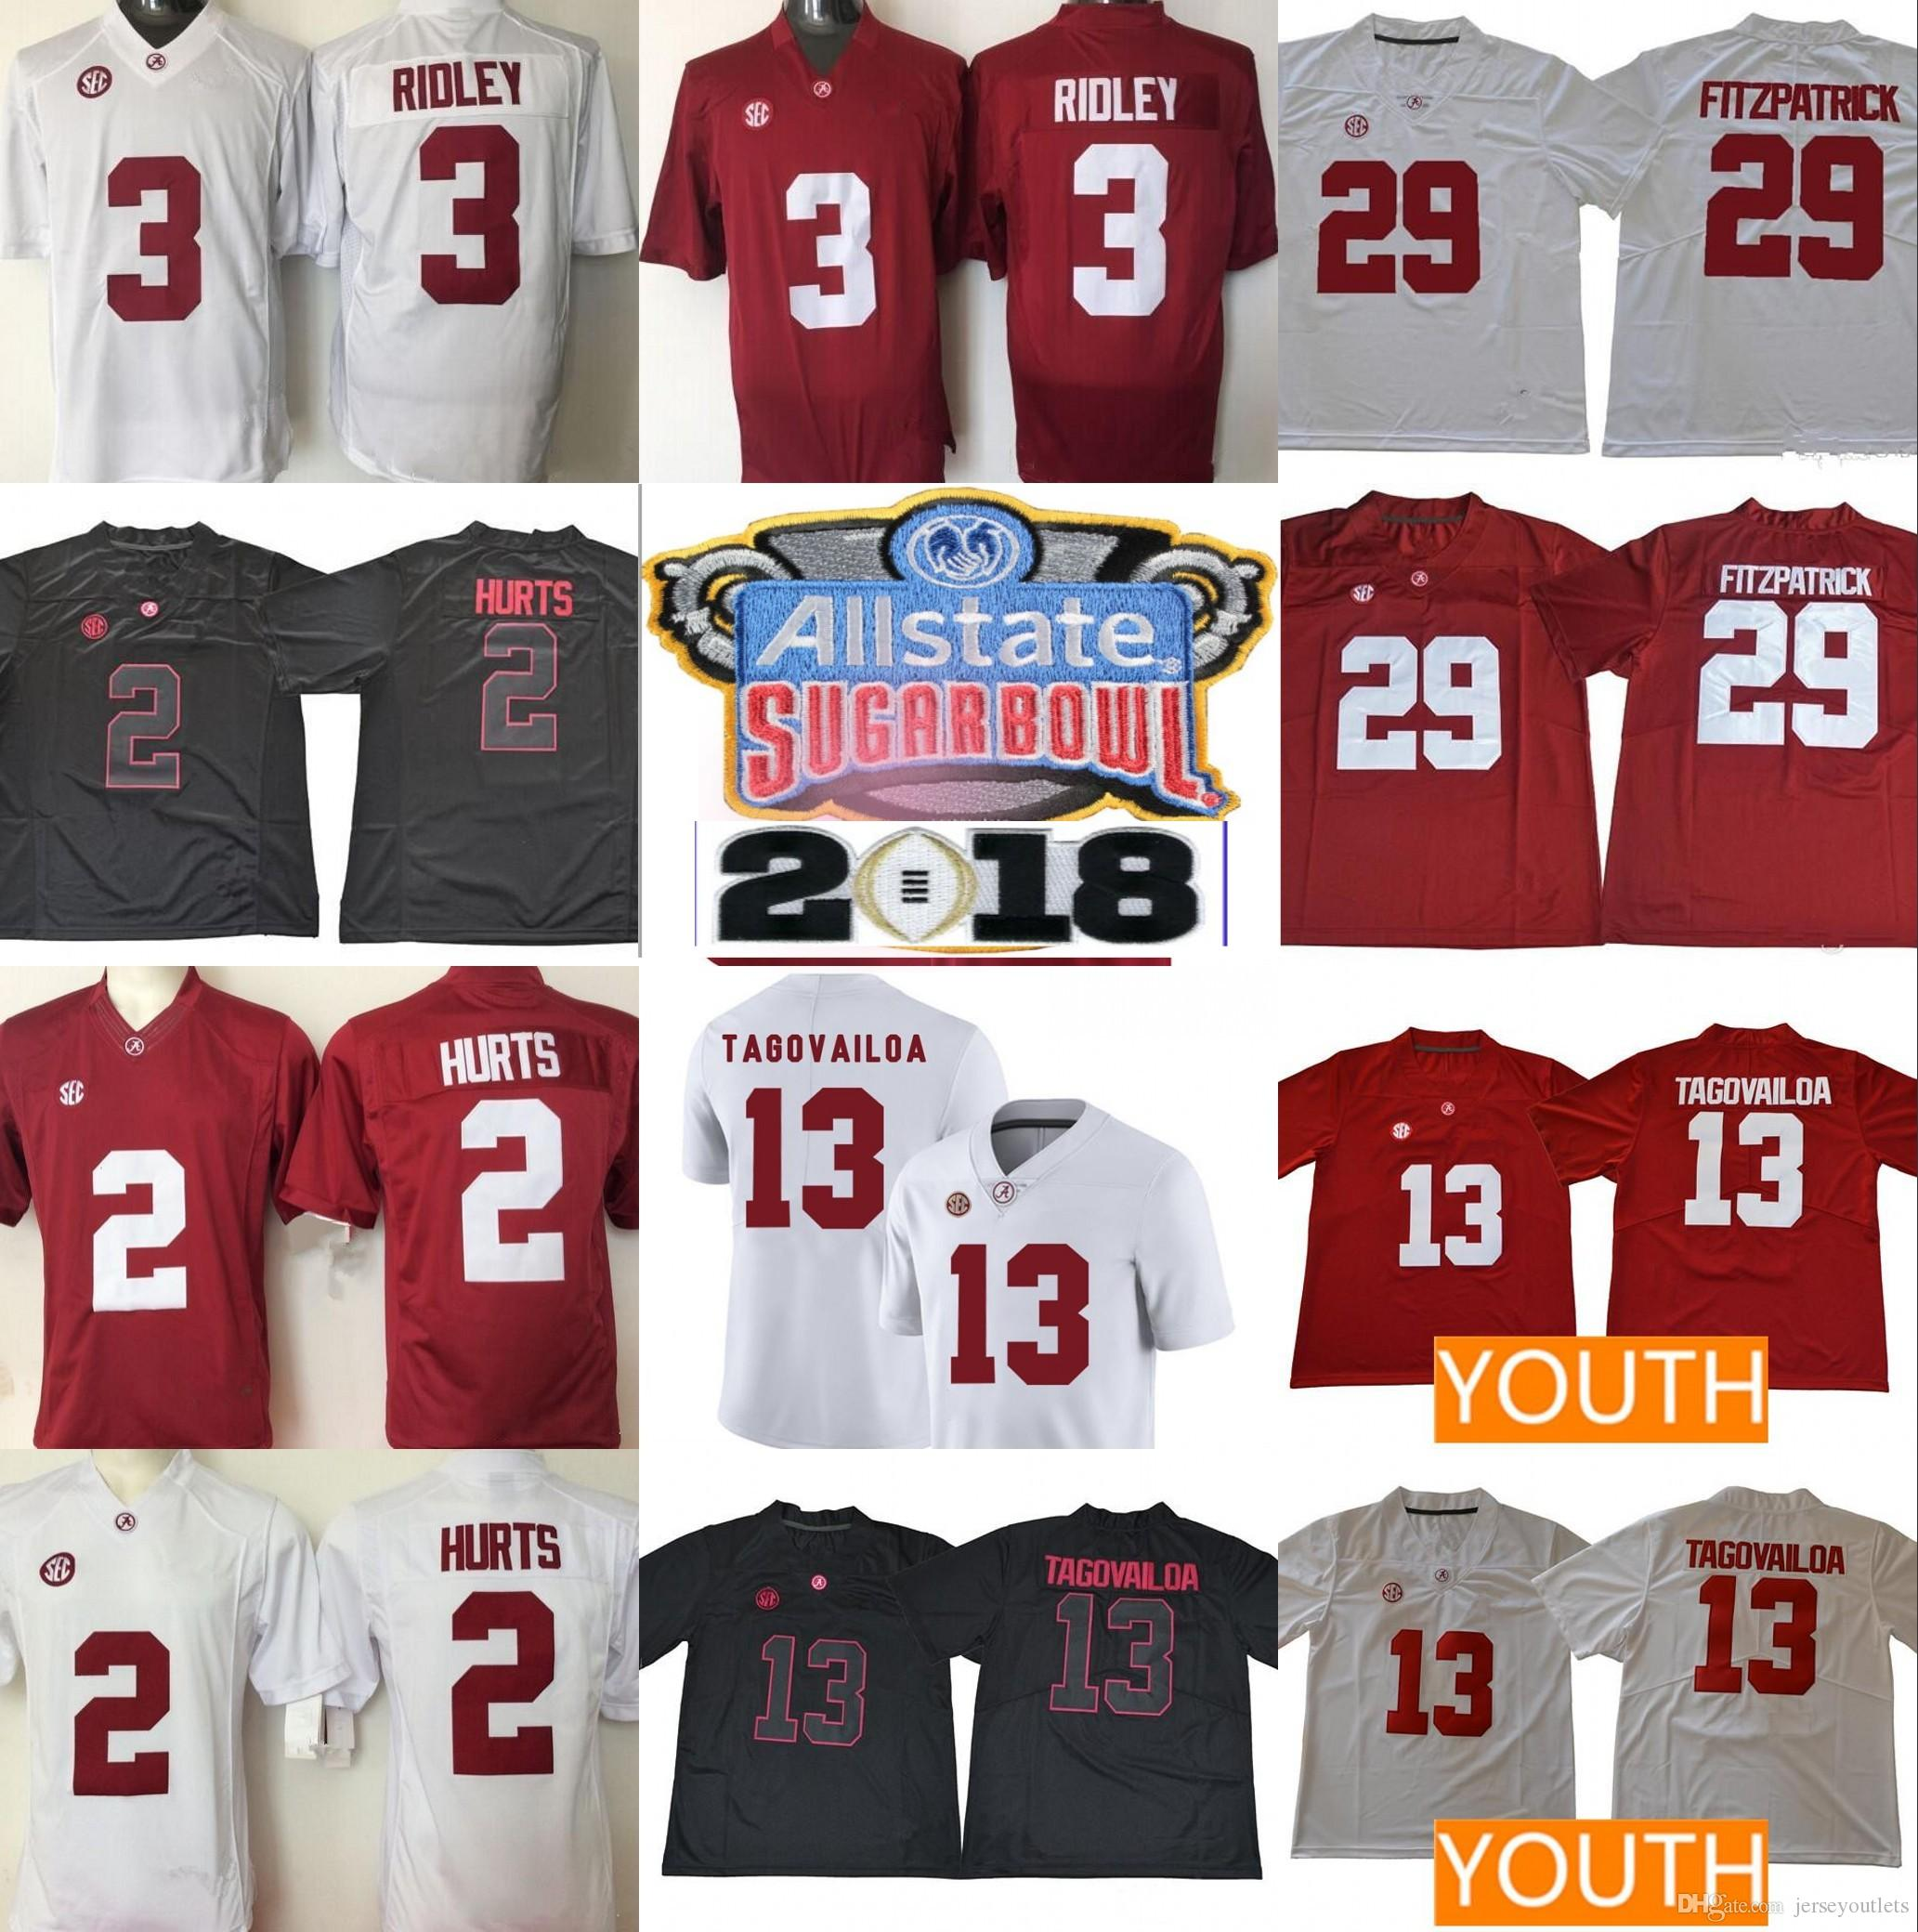 2019 NCAA Alabama Crimson Tide  13 Tua Tagovailoa 2 Jalen Hurts  3 Ridley  29 Fitzpatrick 9 Scarbrough Red White 2018 Championship Football Jersey  From ... 99abd928d